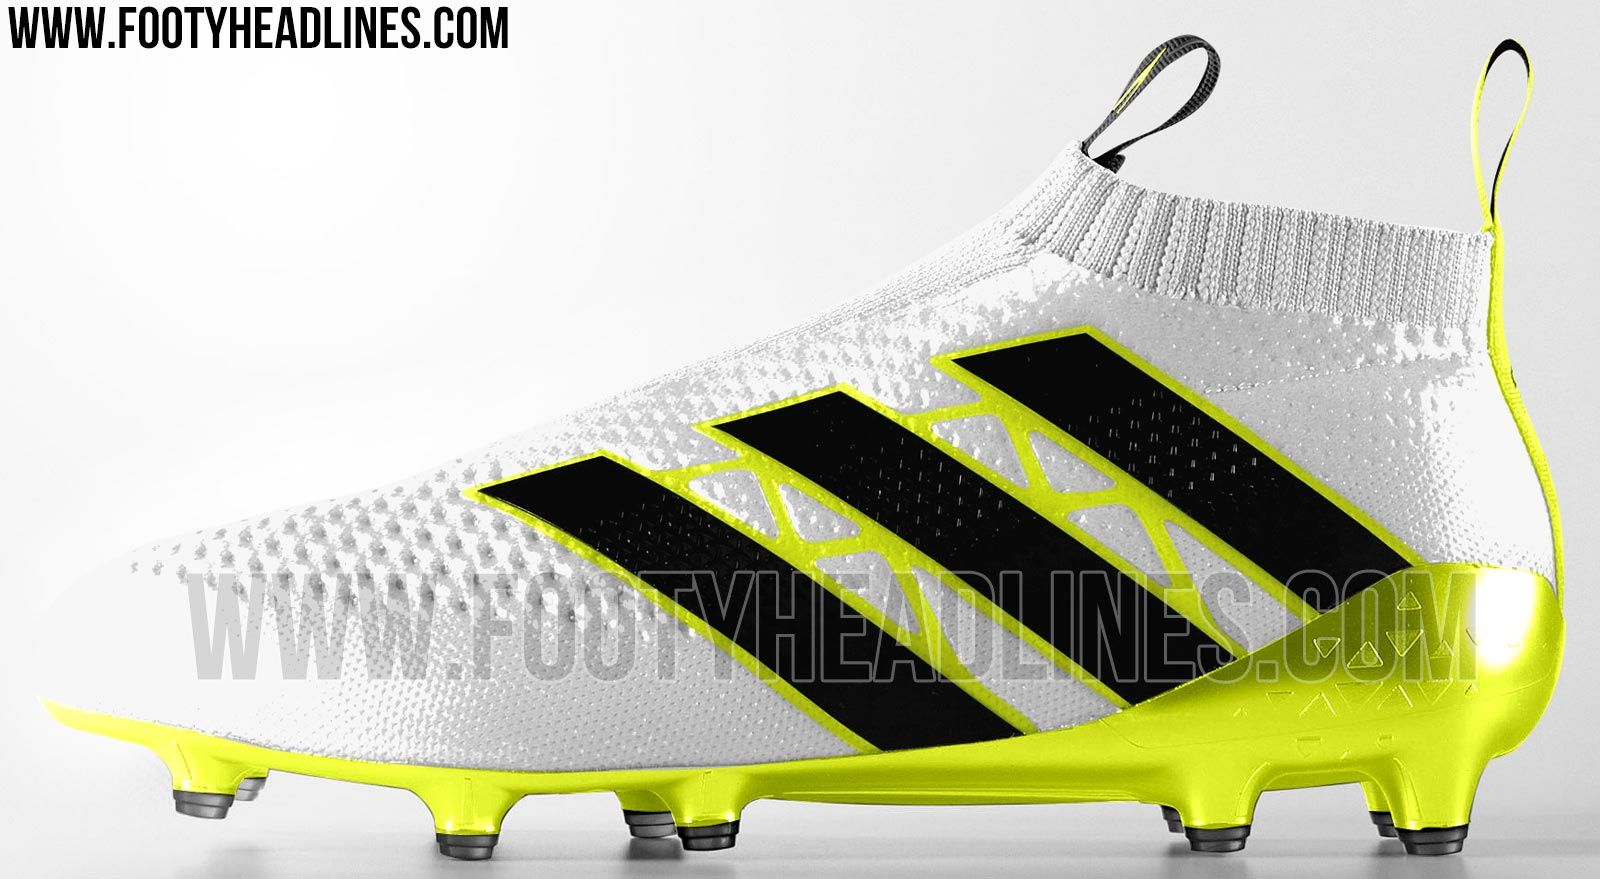 The white Adidas Ace 16+ PureControl football boots will be launched in  June 2016 and